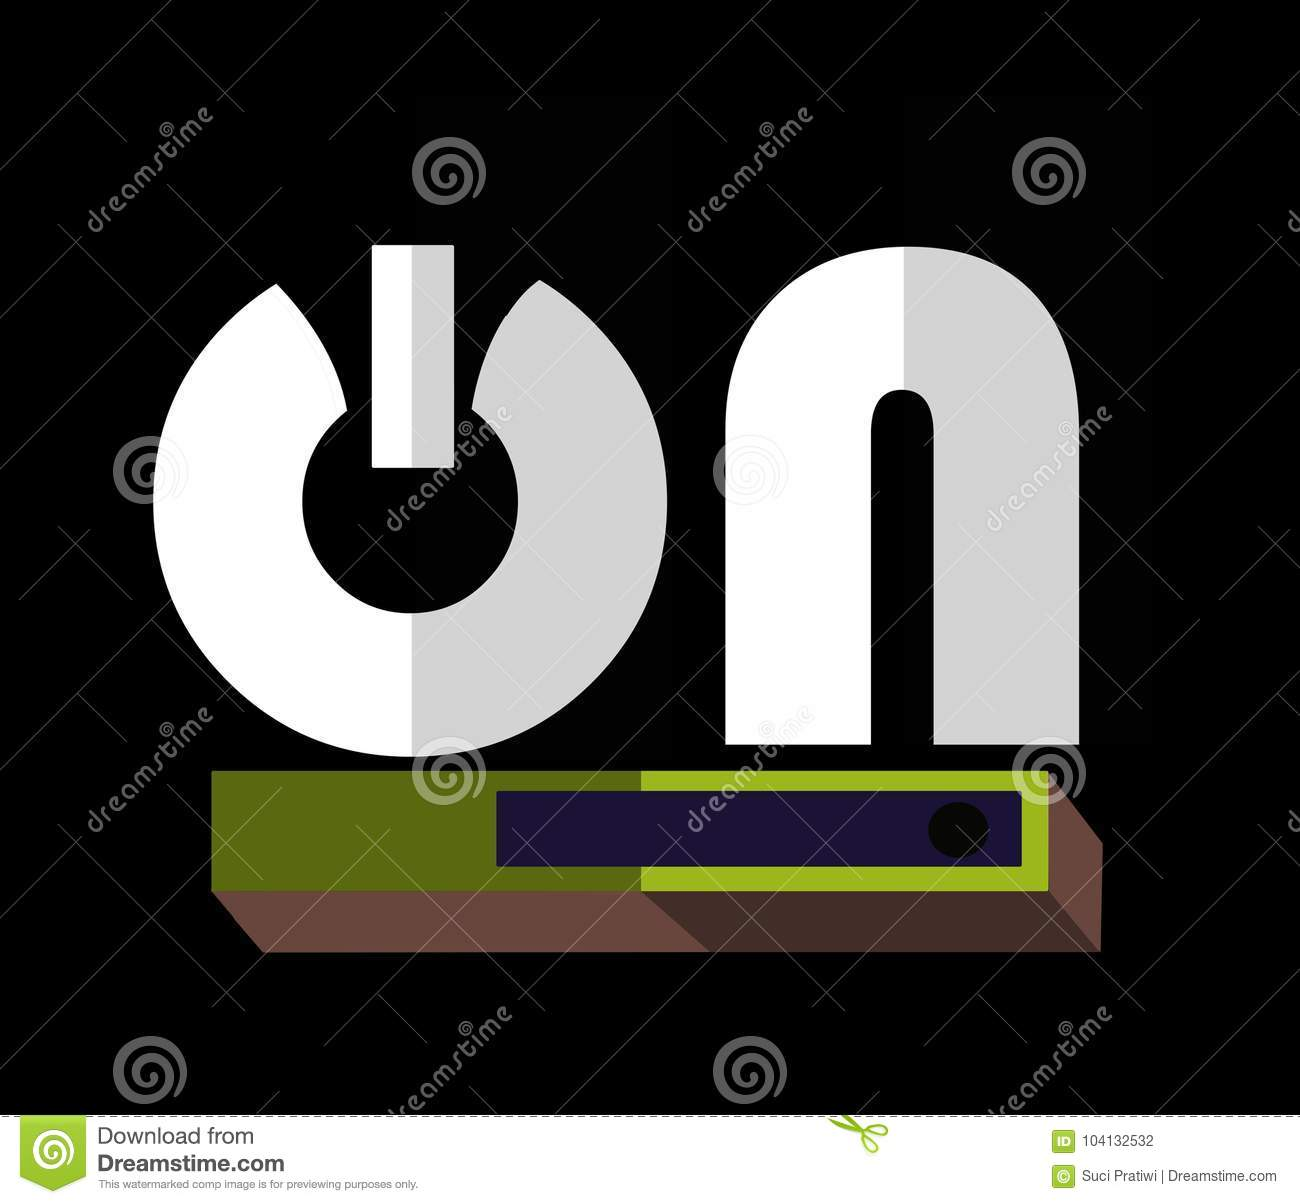 Symbols On Letter Or Text Icon Stock Illustration Illustration